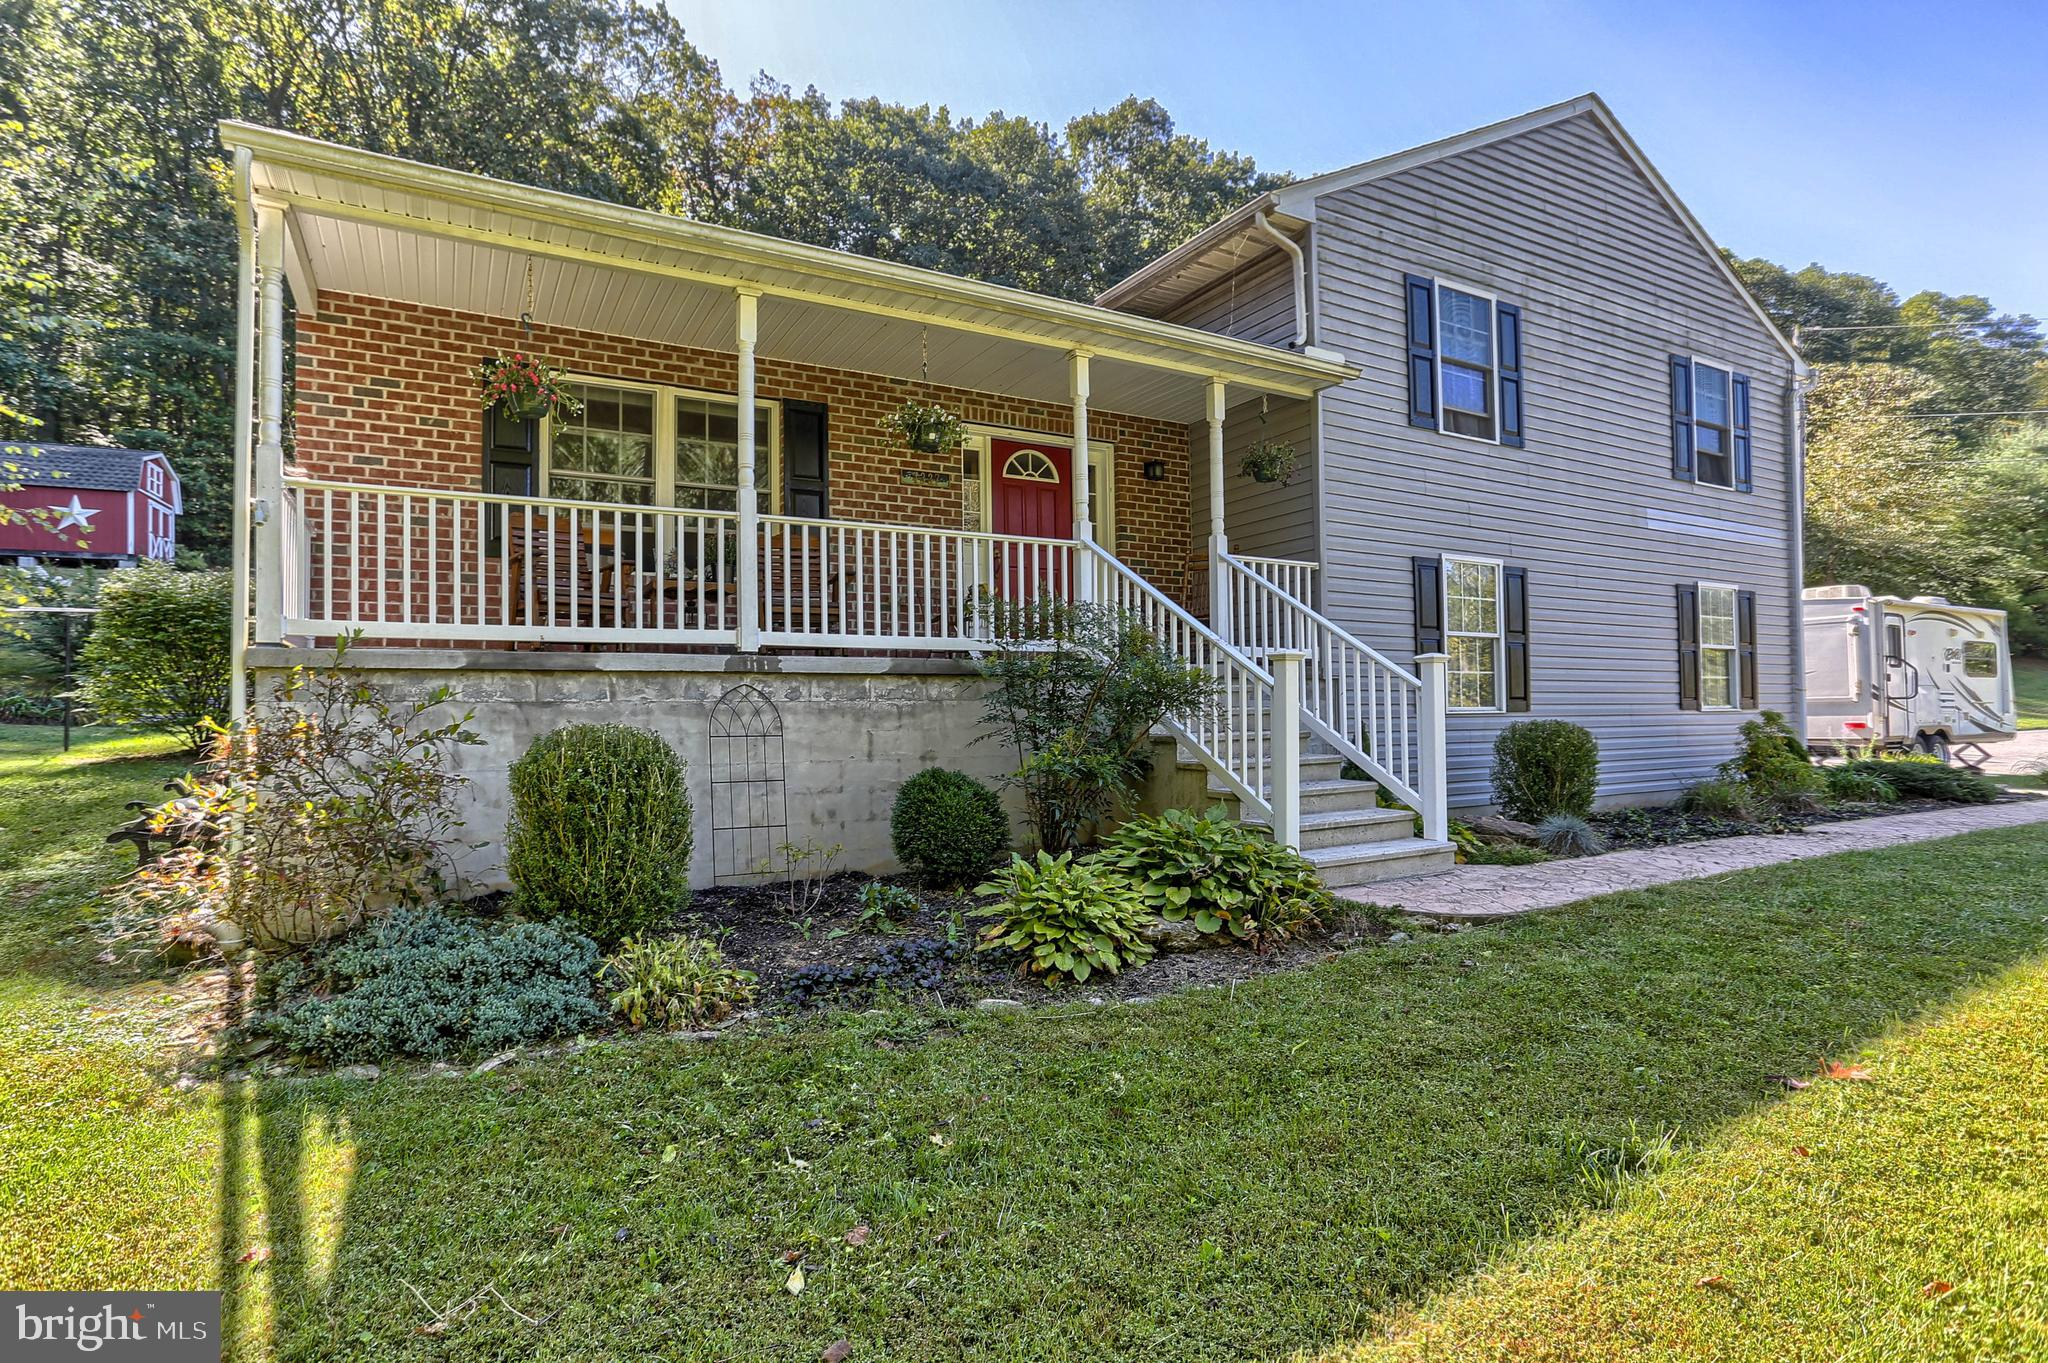 4337 FOUR OAKS LANE, GLEN ROCK, PA 17327